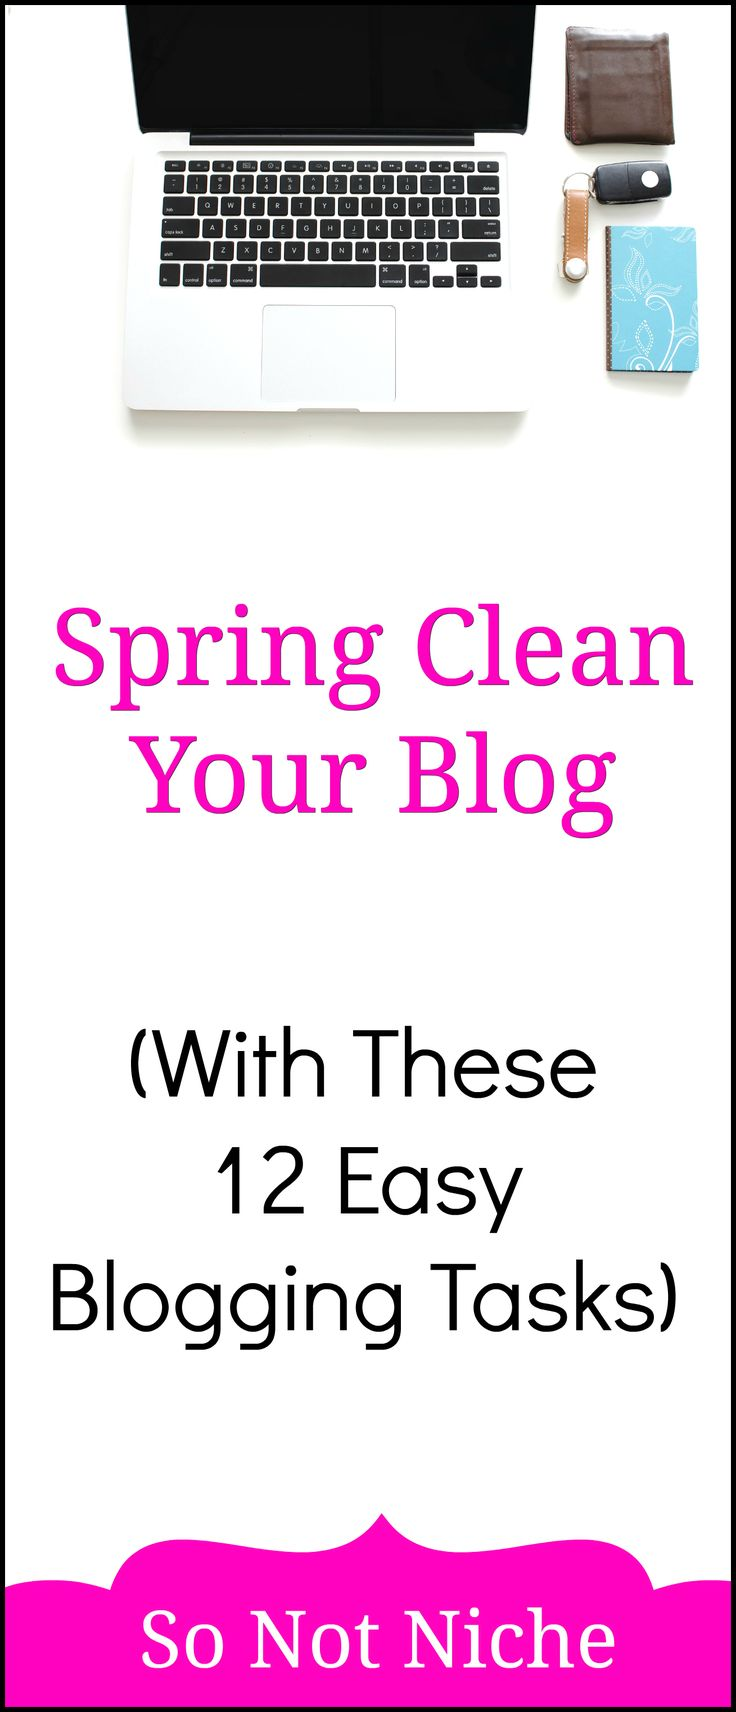 Blogging Tips. 12 easy things you can do to spring clean your blog. Improve your site speed, get more traffic and earn more with a clean, functional blog. | | #springcleaning #blogging #business